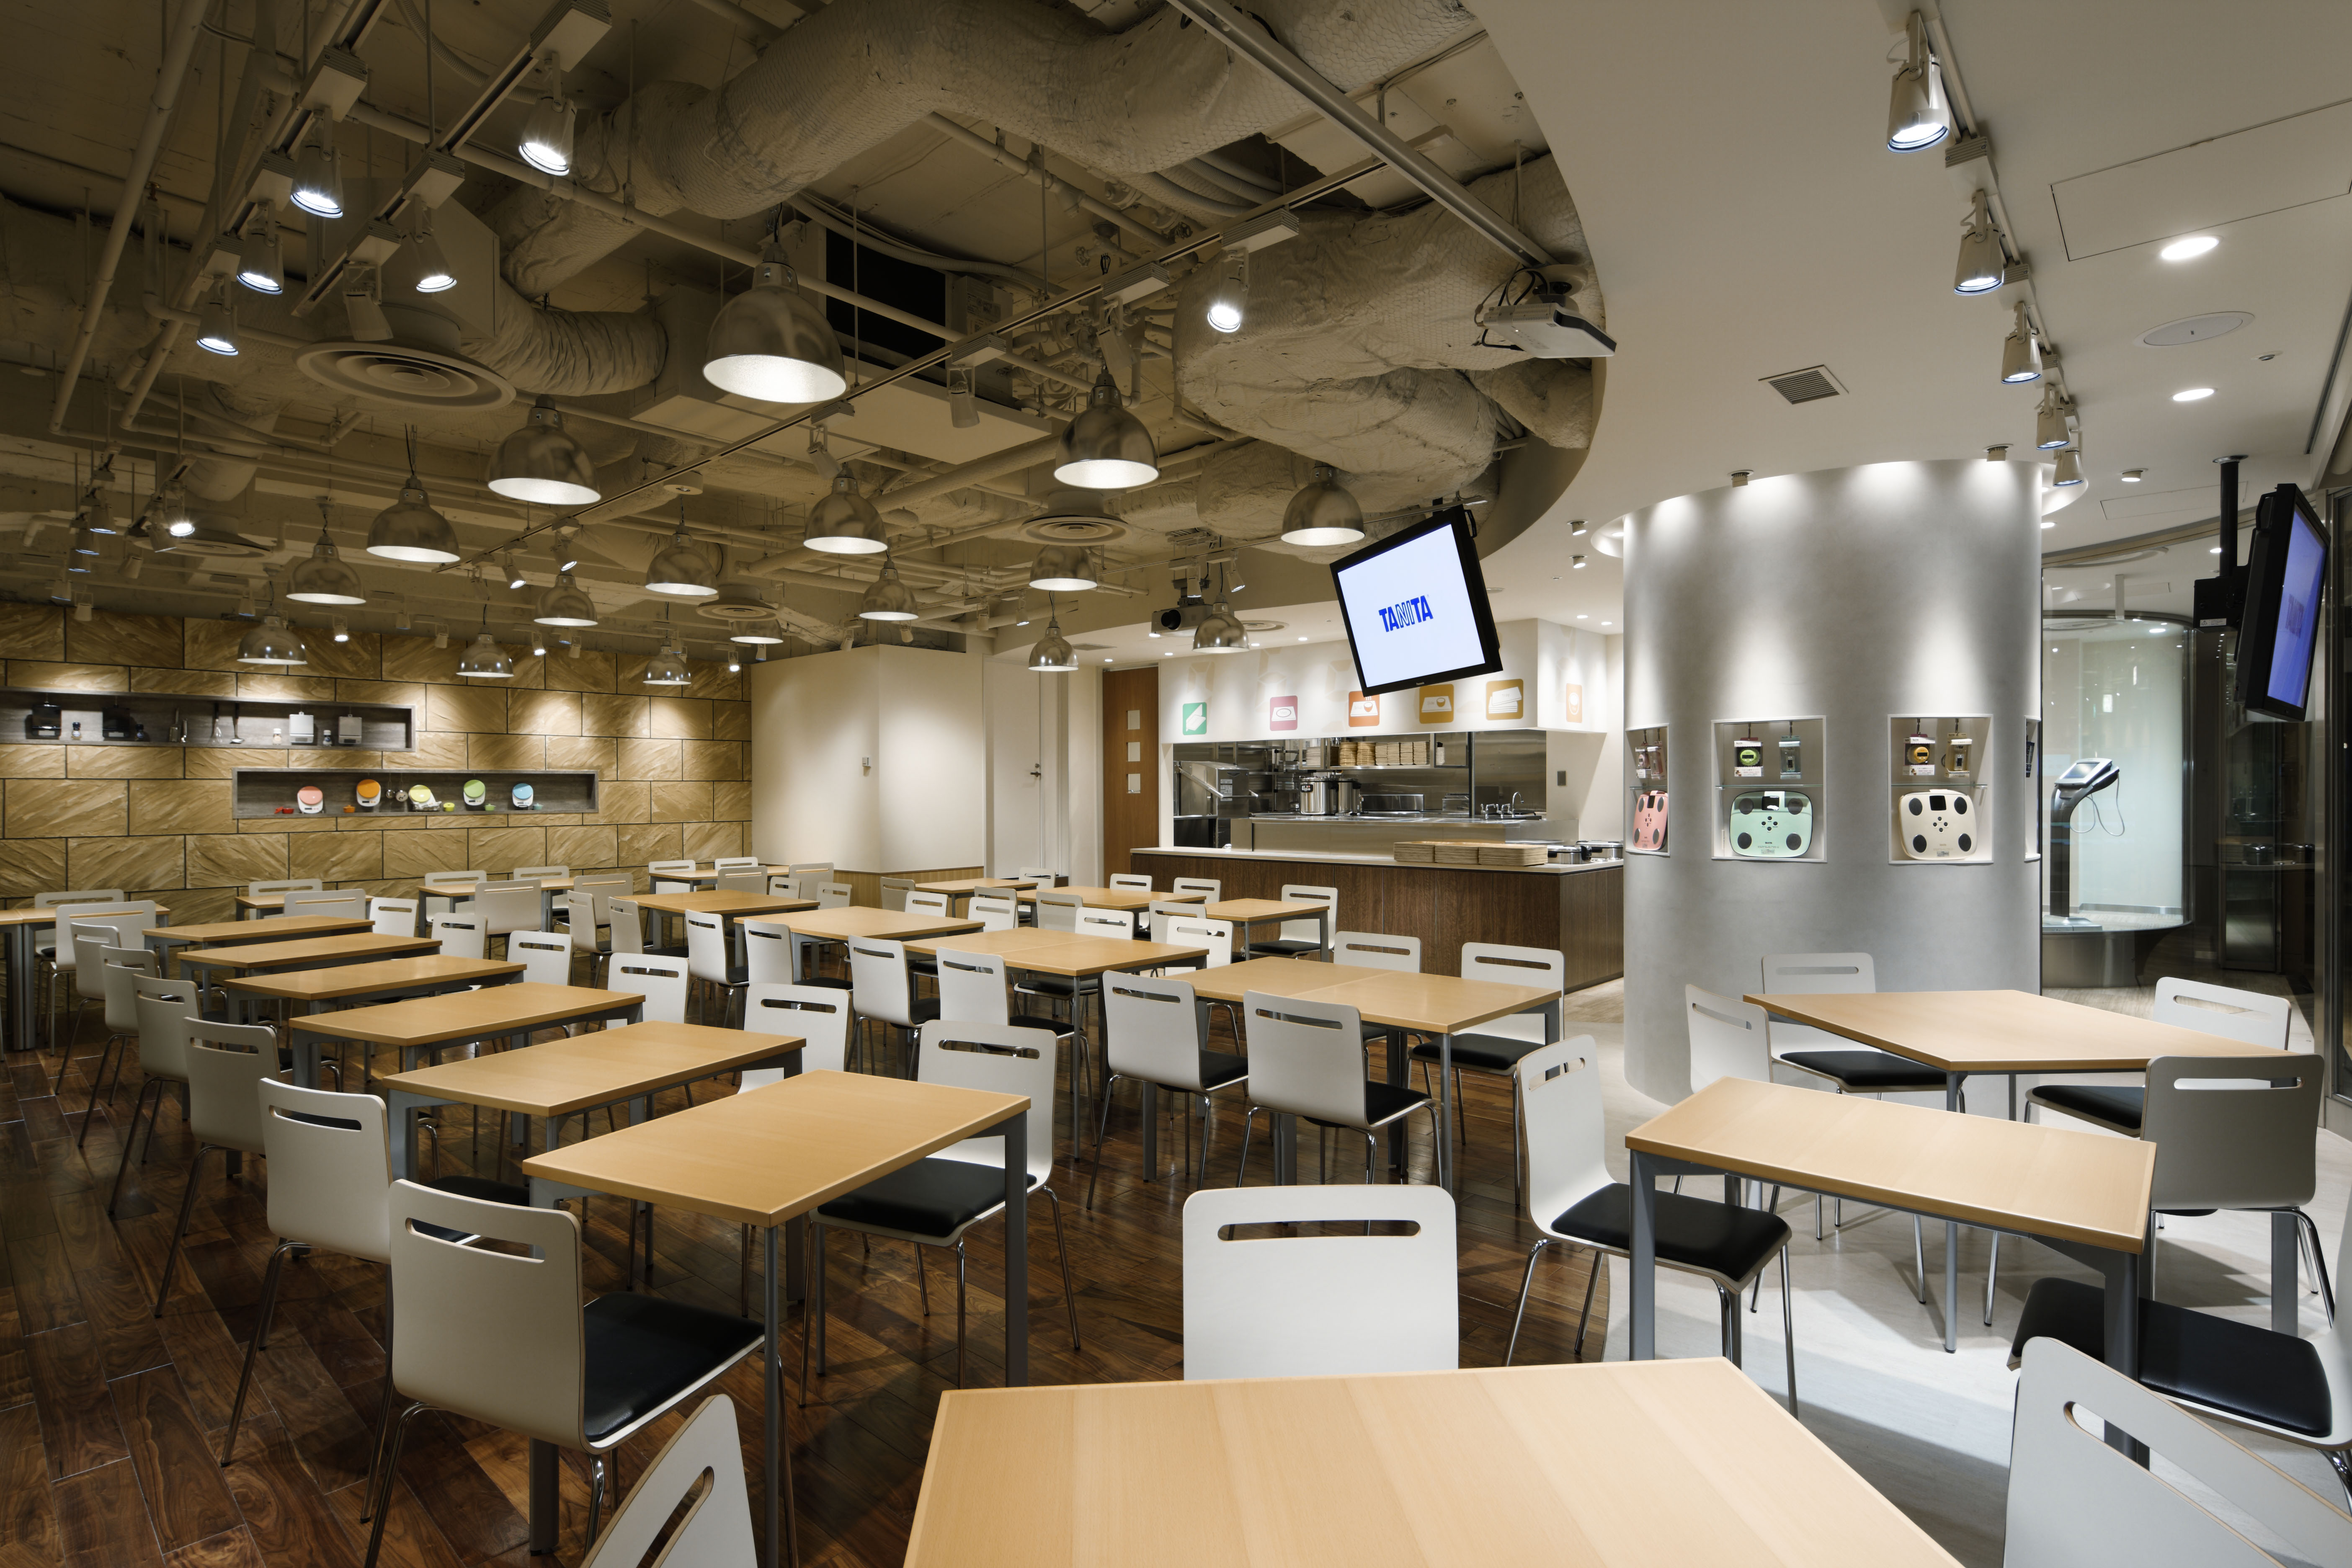 Working lunch: Many Japanese offices pride themselves on their cafeteria, with some even open to the public. Marunouchi Tanita Shokudo (above and below) is actually a popular standalone restaurant. | GMO INTERNET INC.